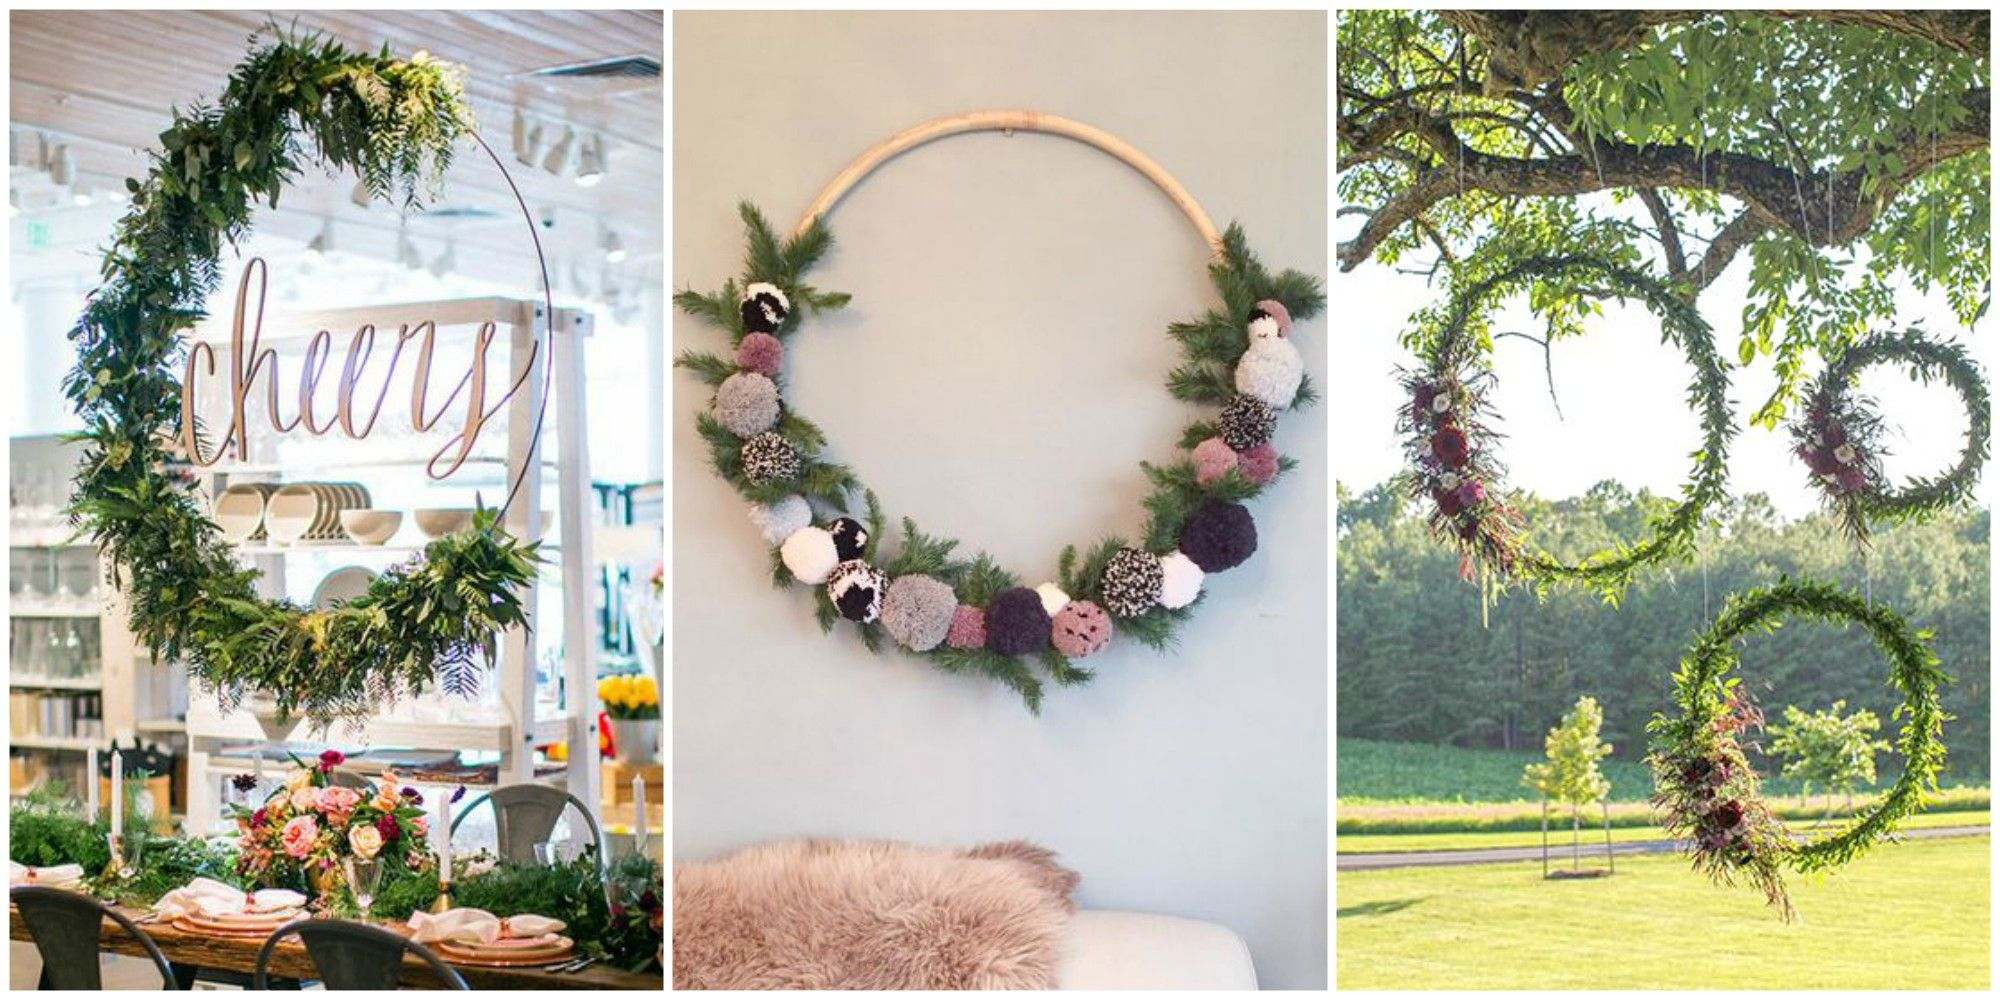 How To Make Large Hula Hoop Wreaths For Spring Diy Large Wreaths